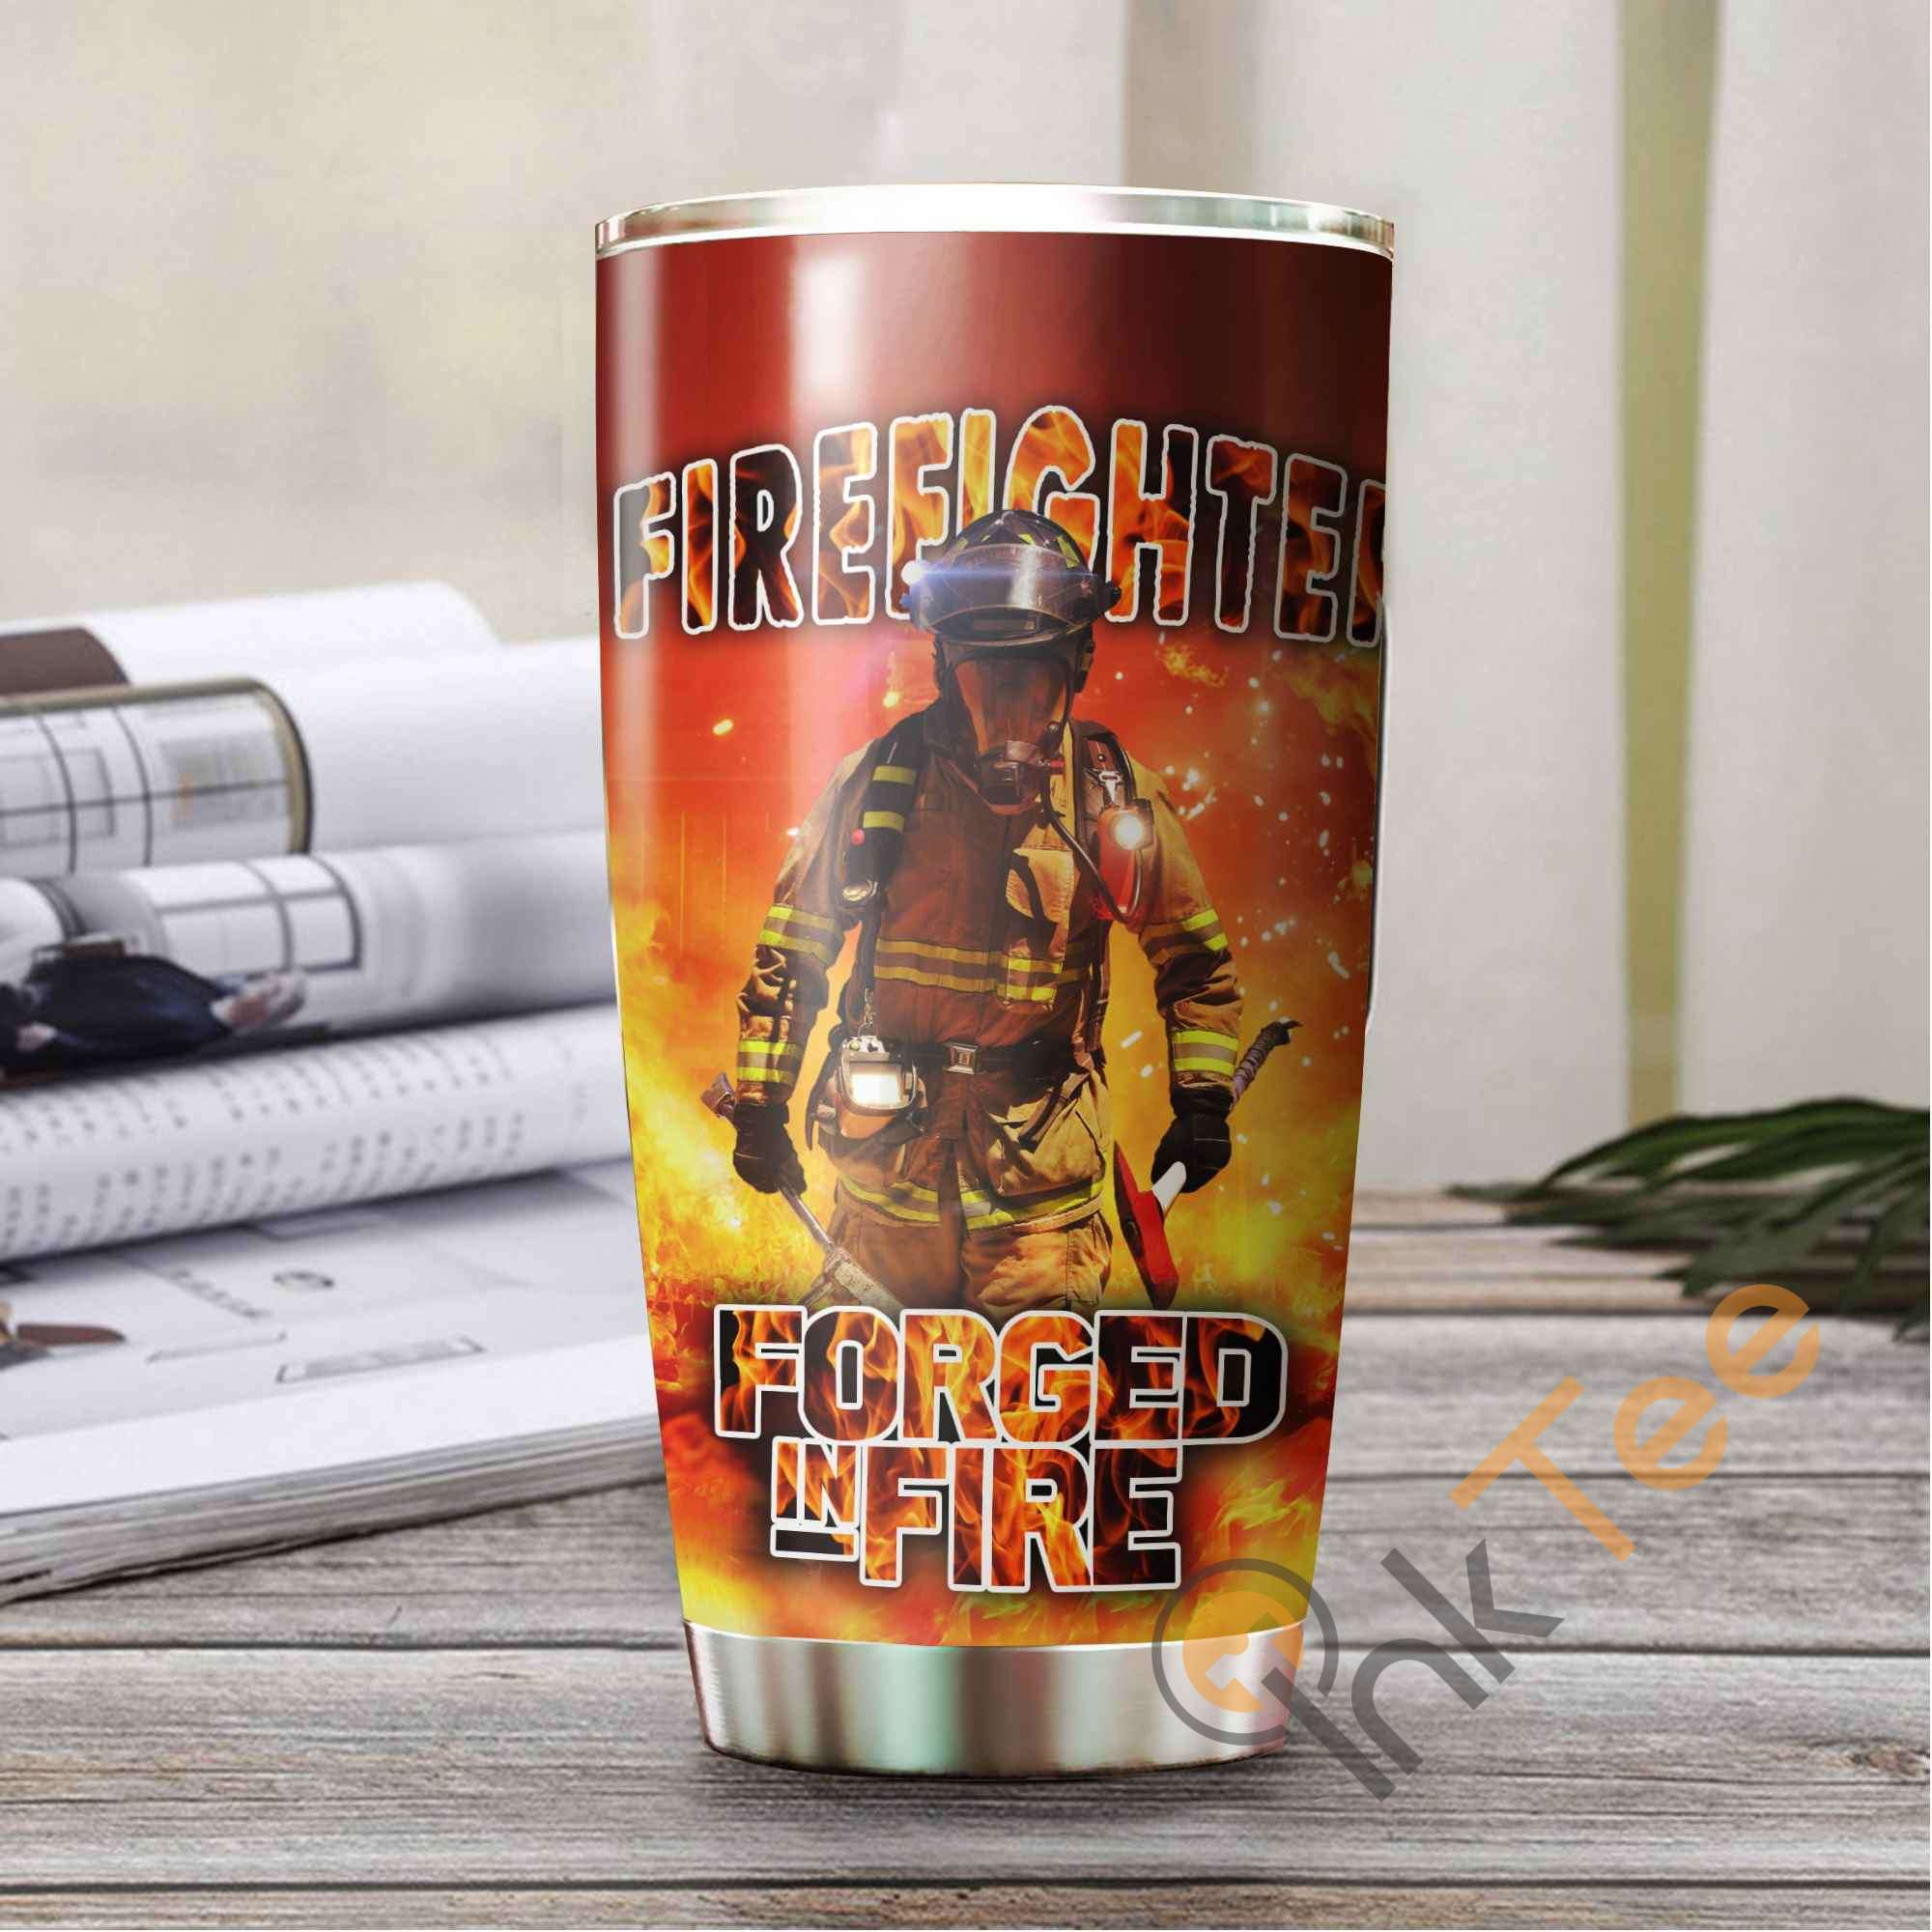 Firefighter Forged In Fire Amazon Best Seller Sku 2962 Stainless Steel Tumbler